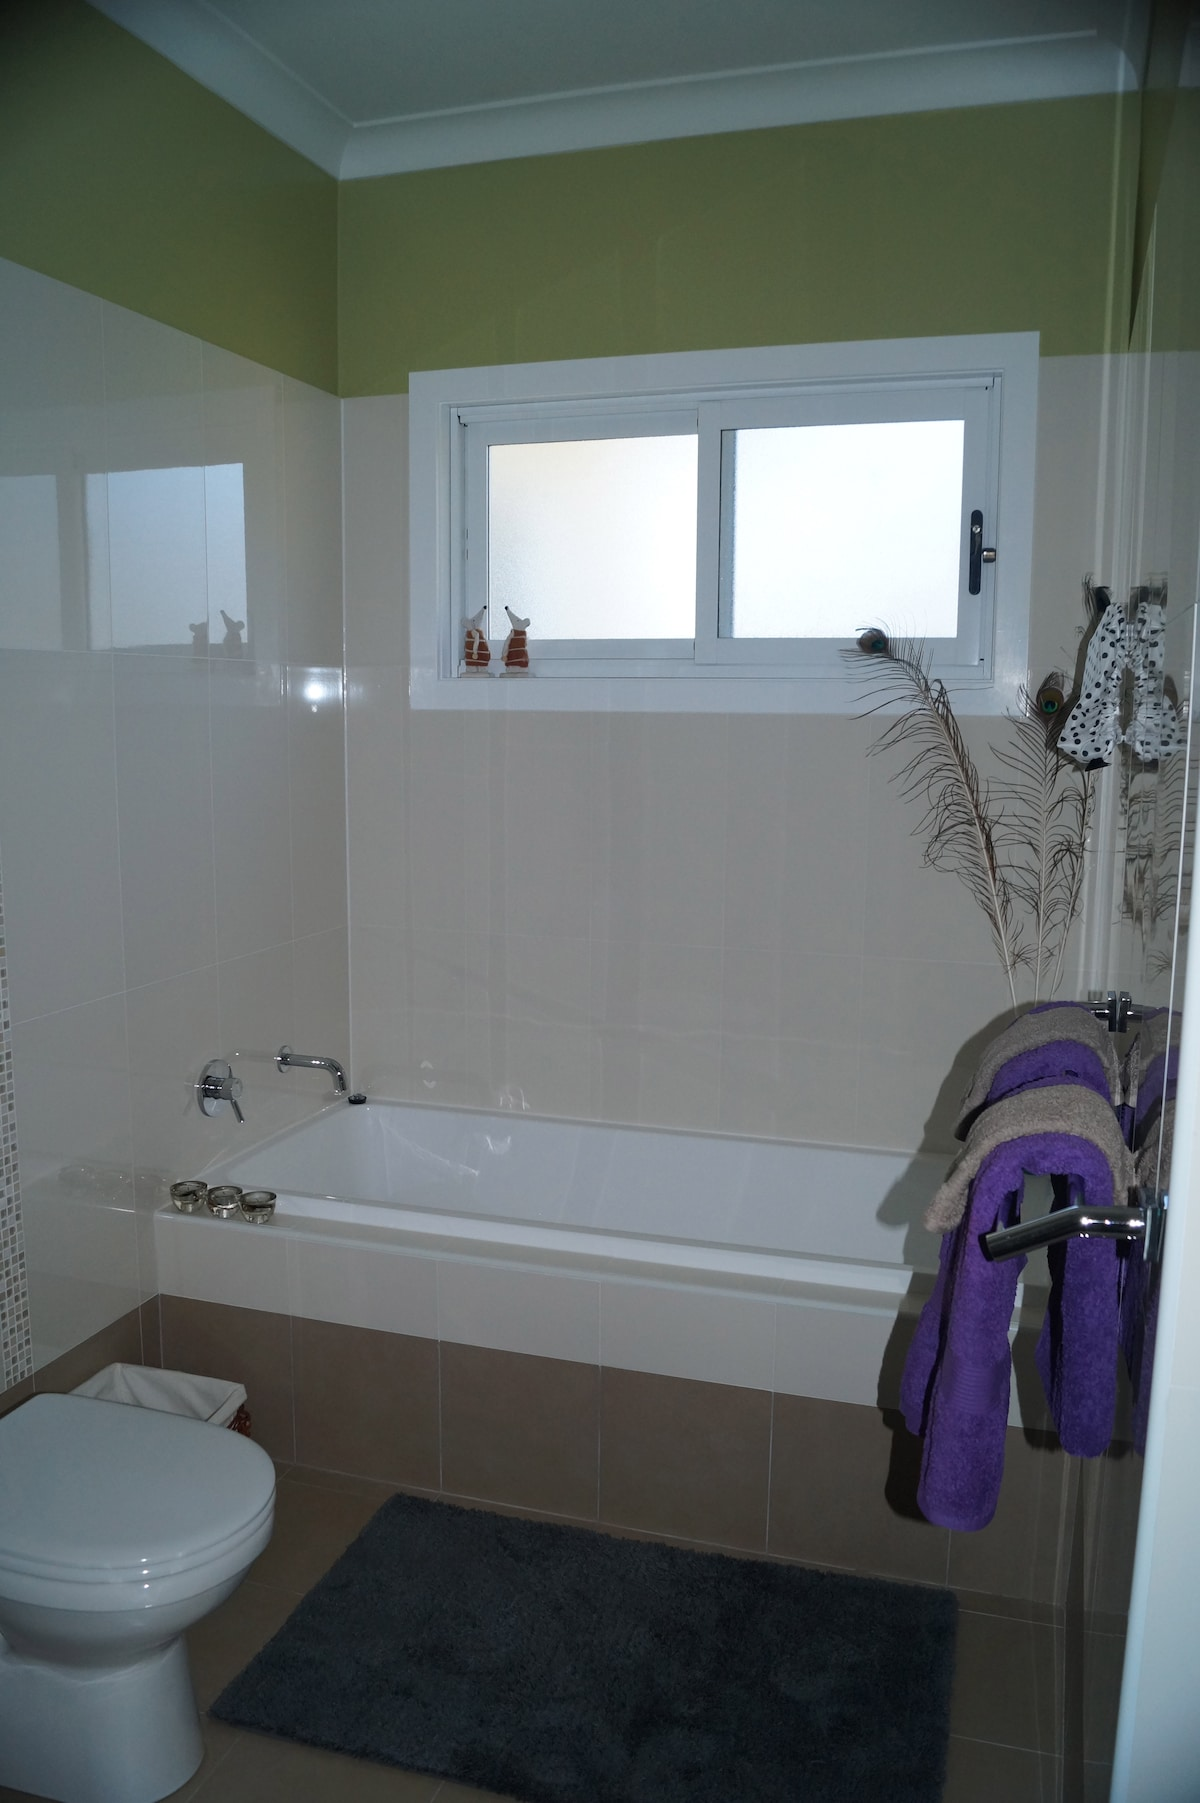 A great bath for a soak after a hard day's leisure and candles for mood lighting too!